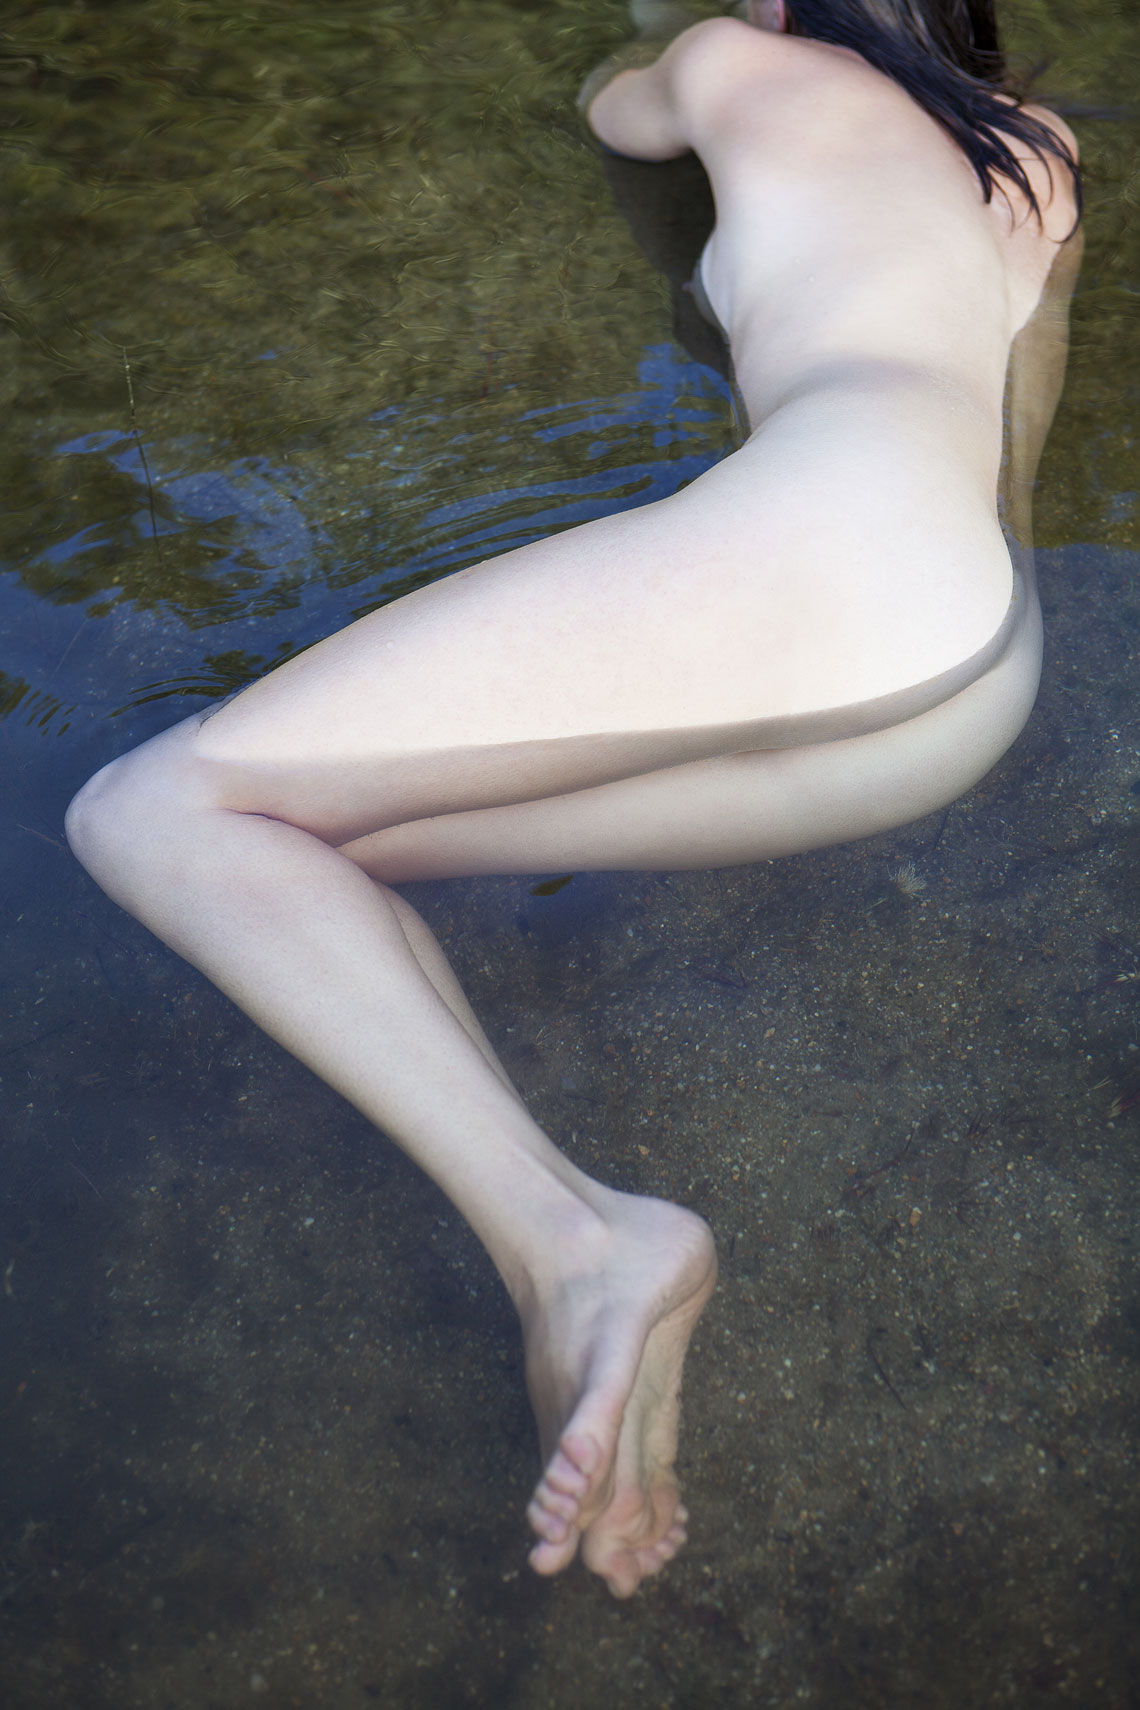 Naked woman almost submerged by water in a pond.